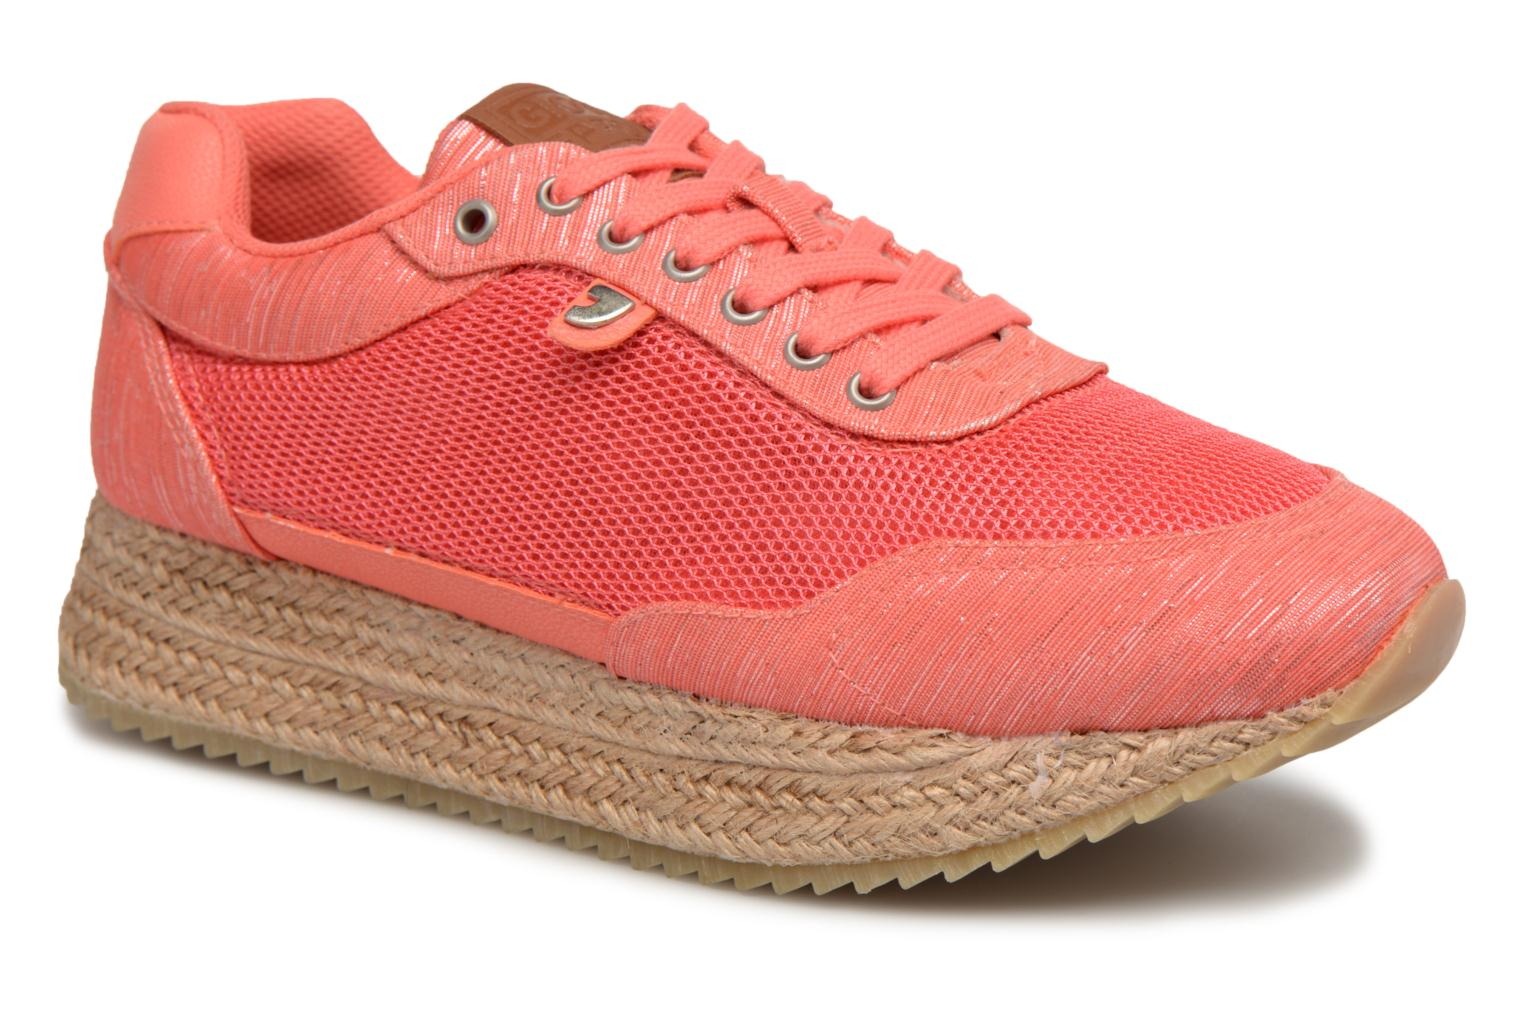 Marques Chaussure femme Gioseppo femme GALEA Coral